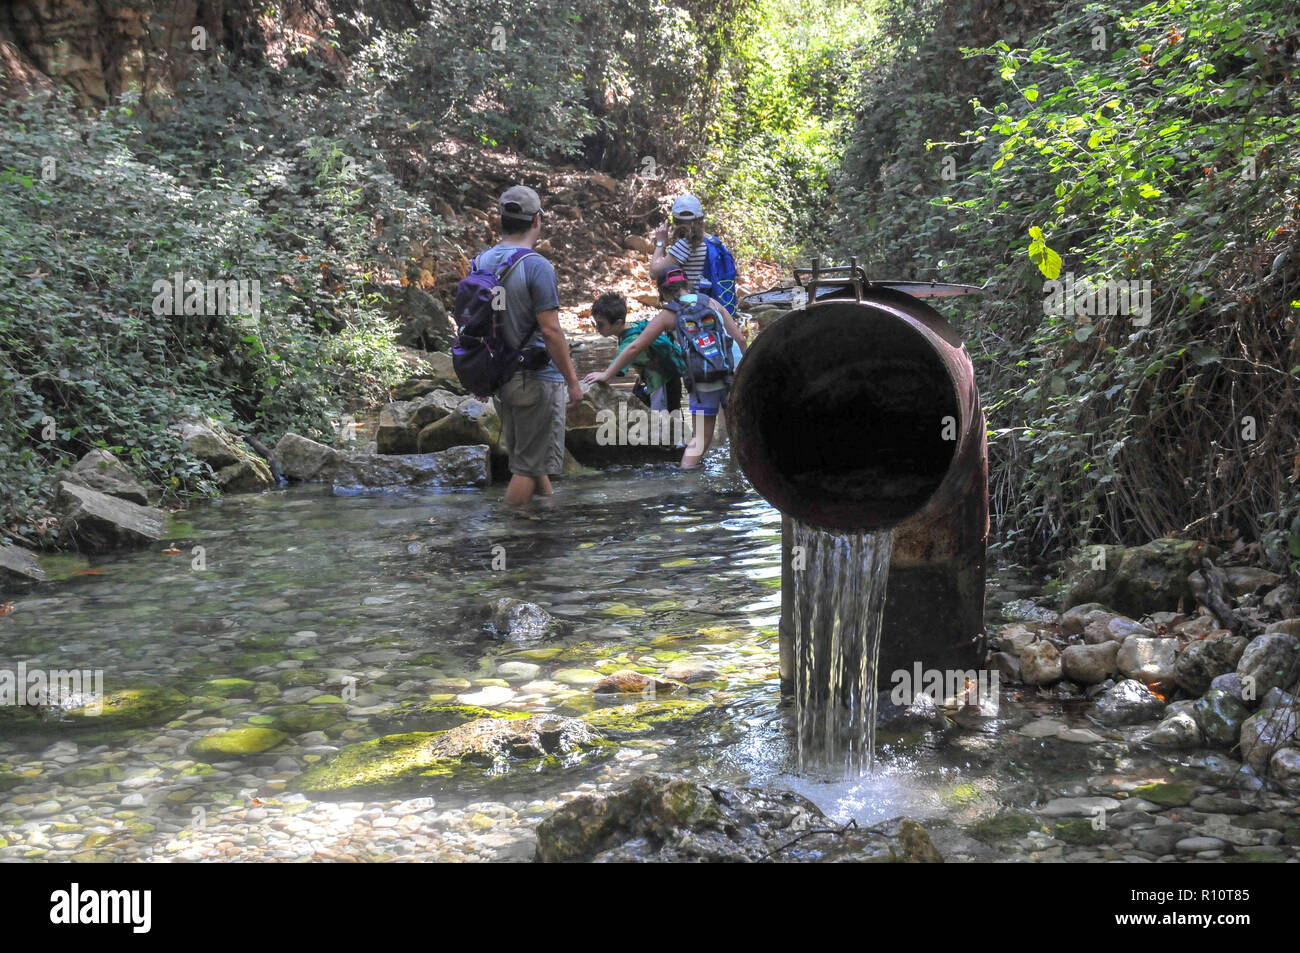 Treated water is being returned to nature at the Kziv stream nature reserve, Galilee, Israel - Stock Image